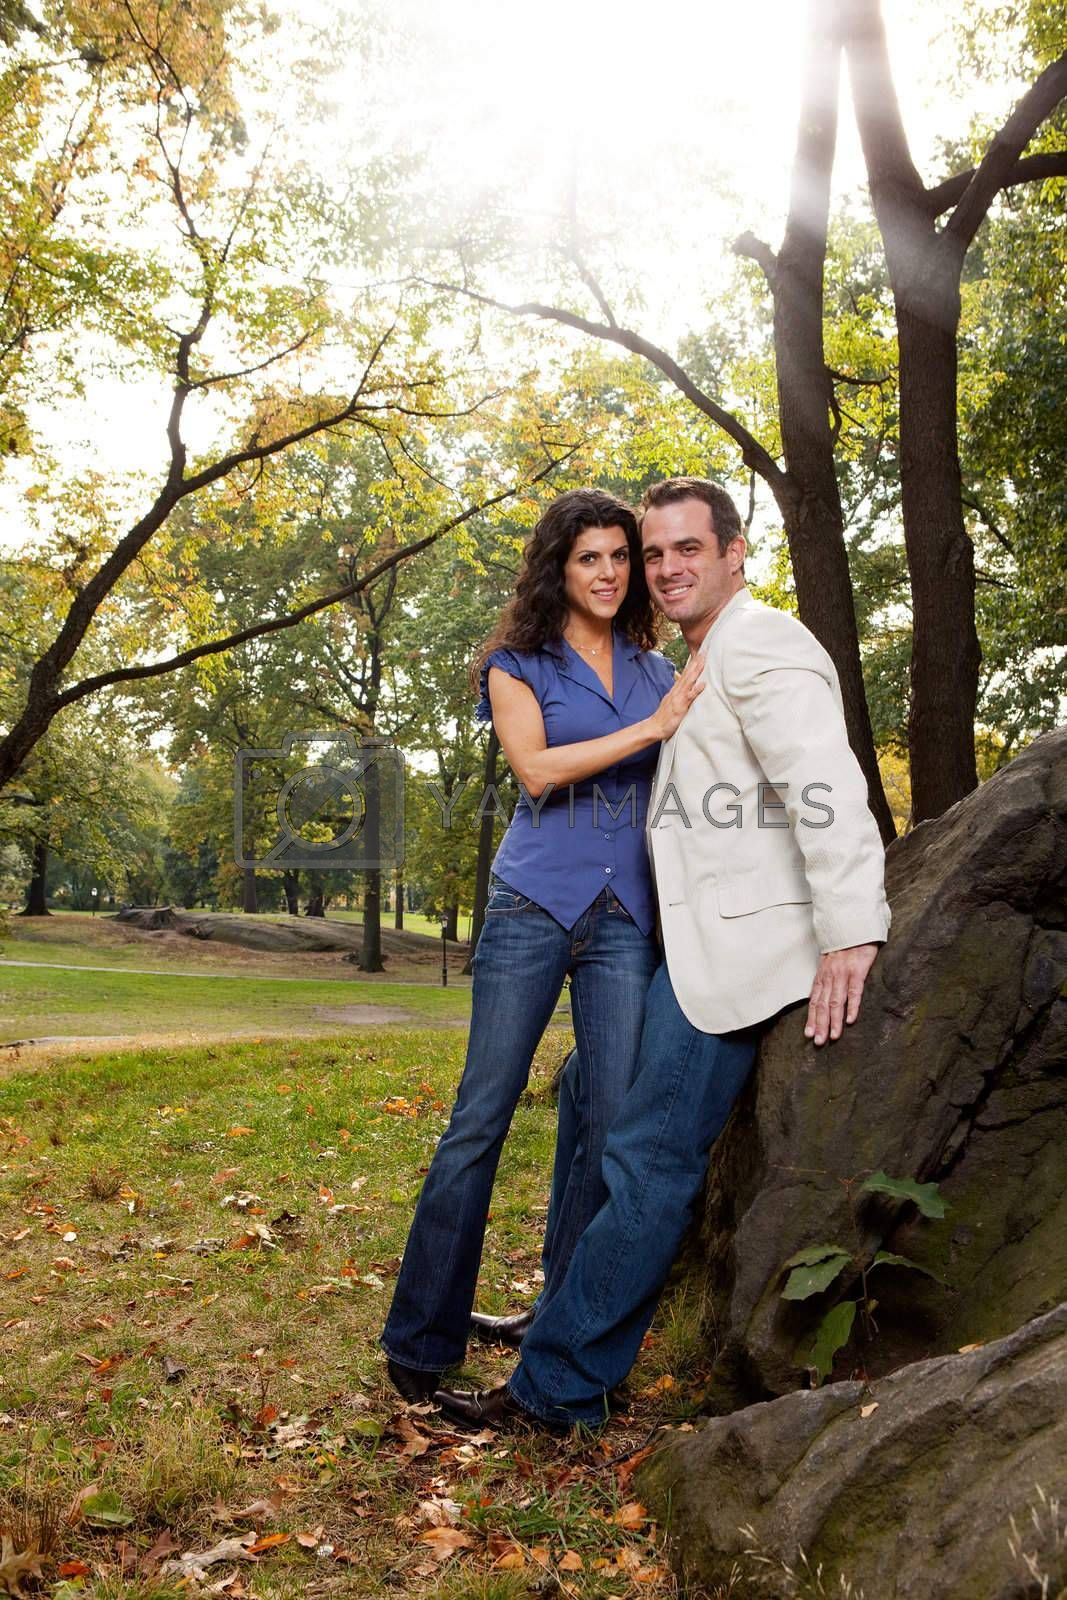 A happy couple relaxing in the park